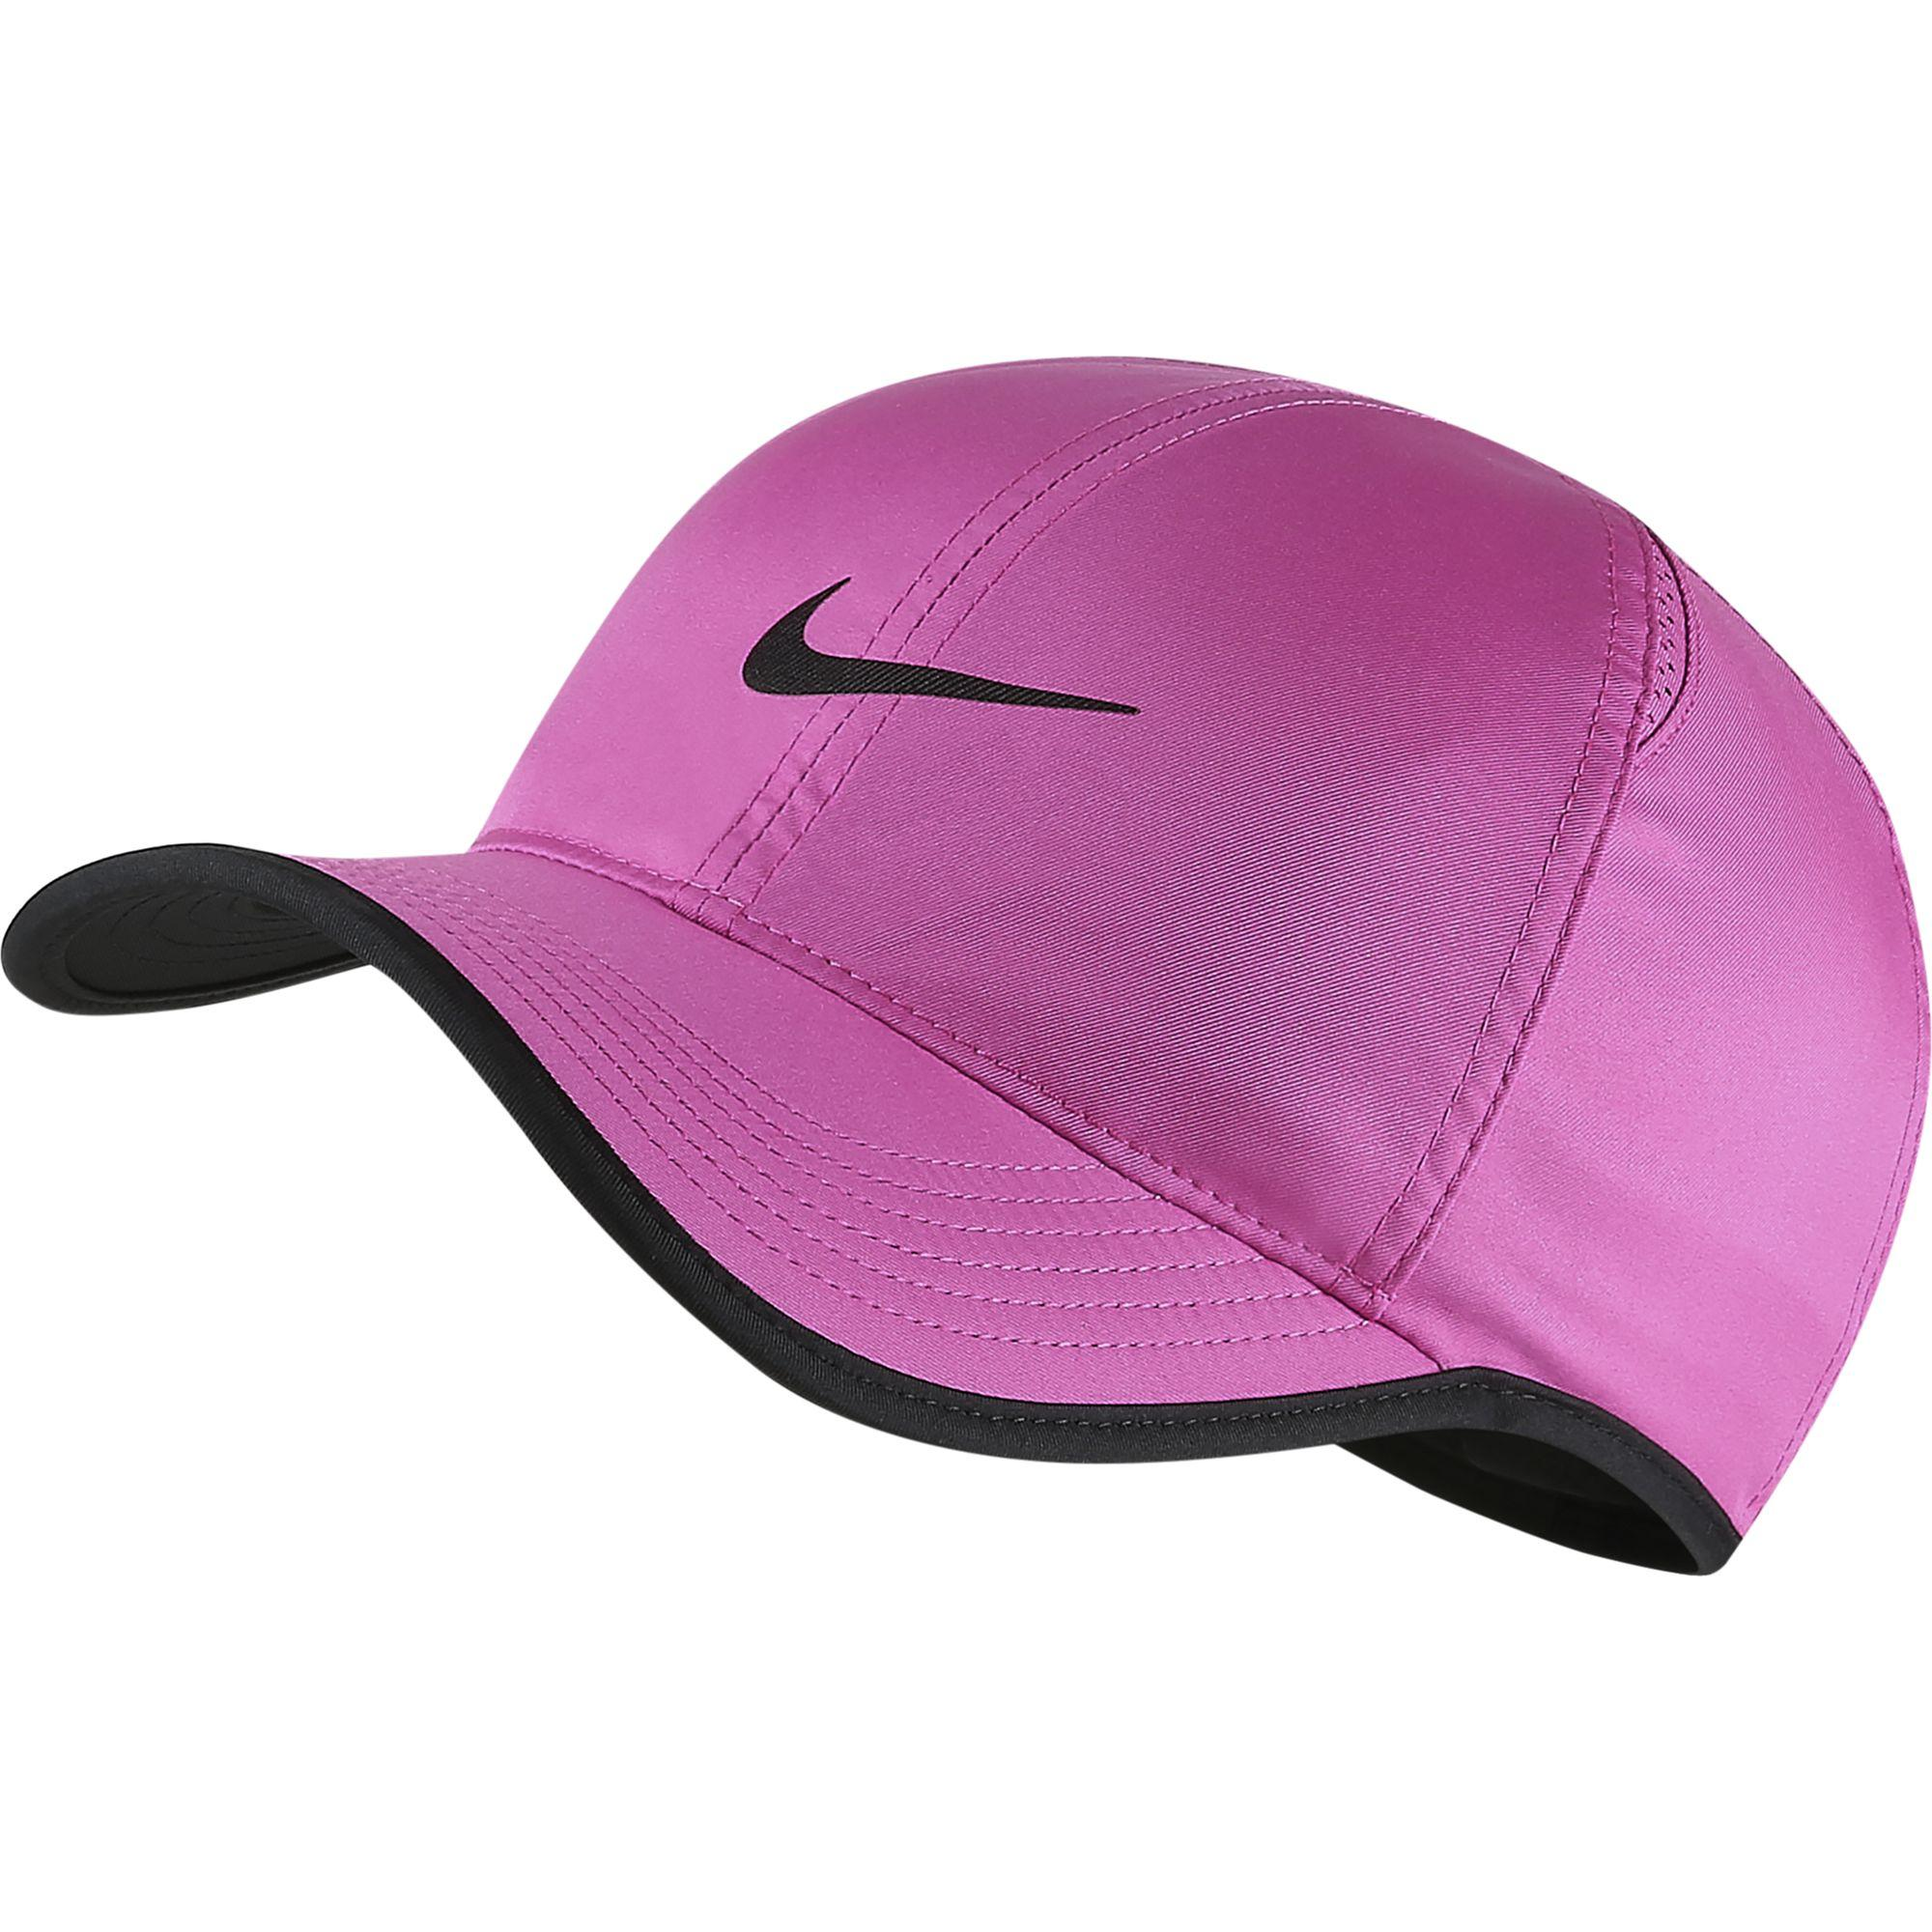 Nike Featherlight Adjustable Cap - Active Fuchsia Black - Tennisnuts.com efaf9cd54b8